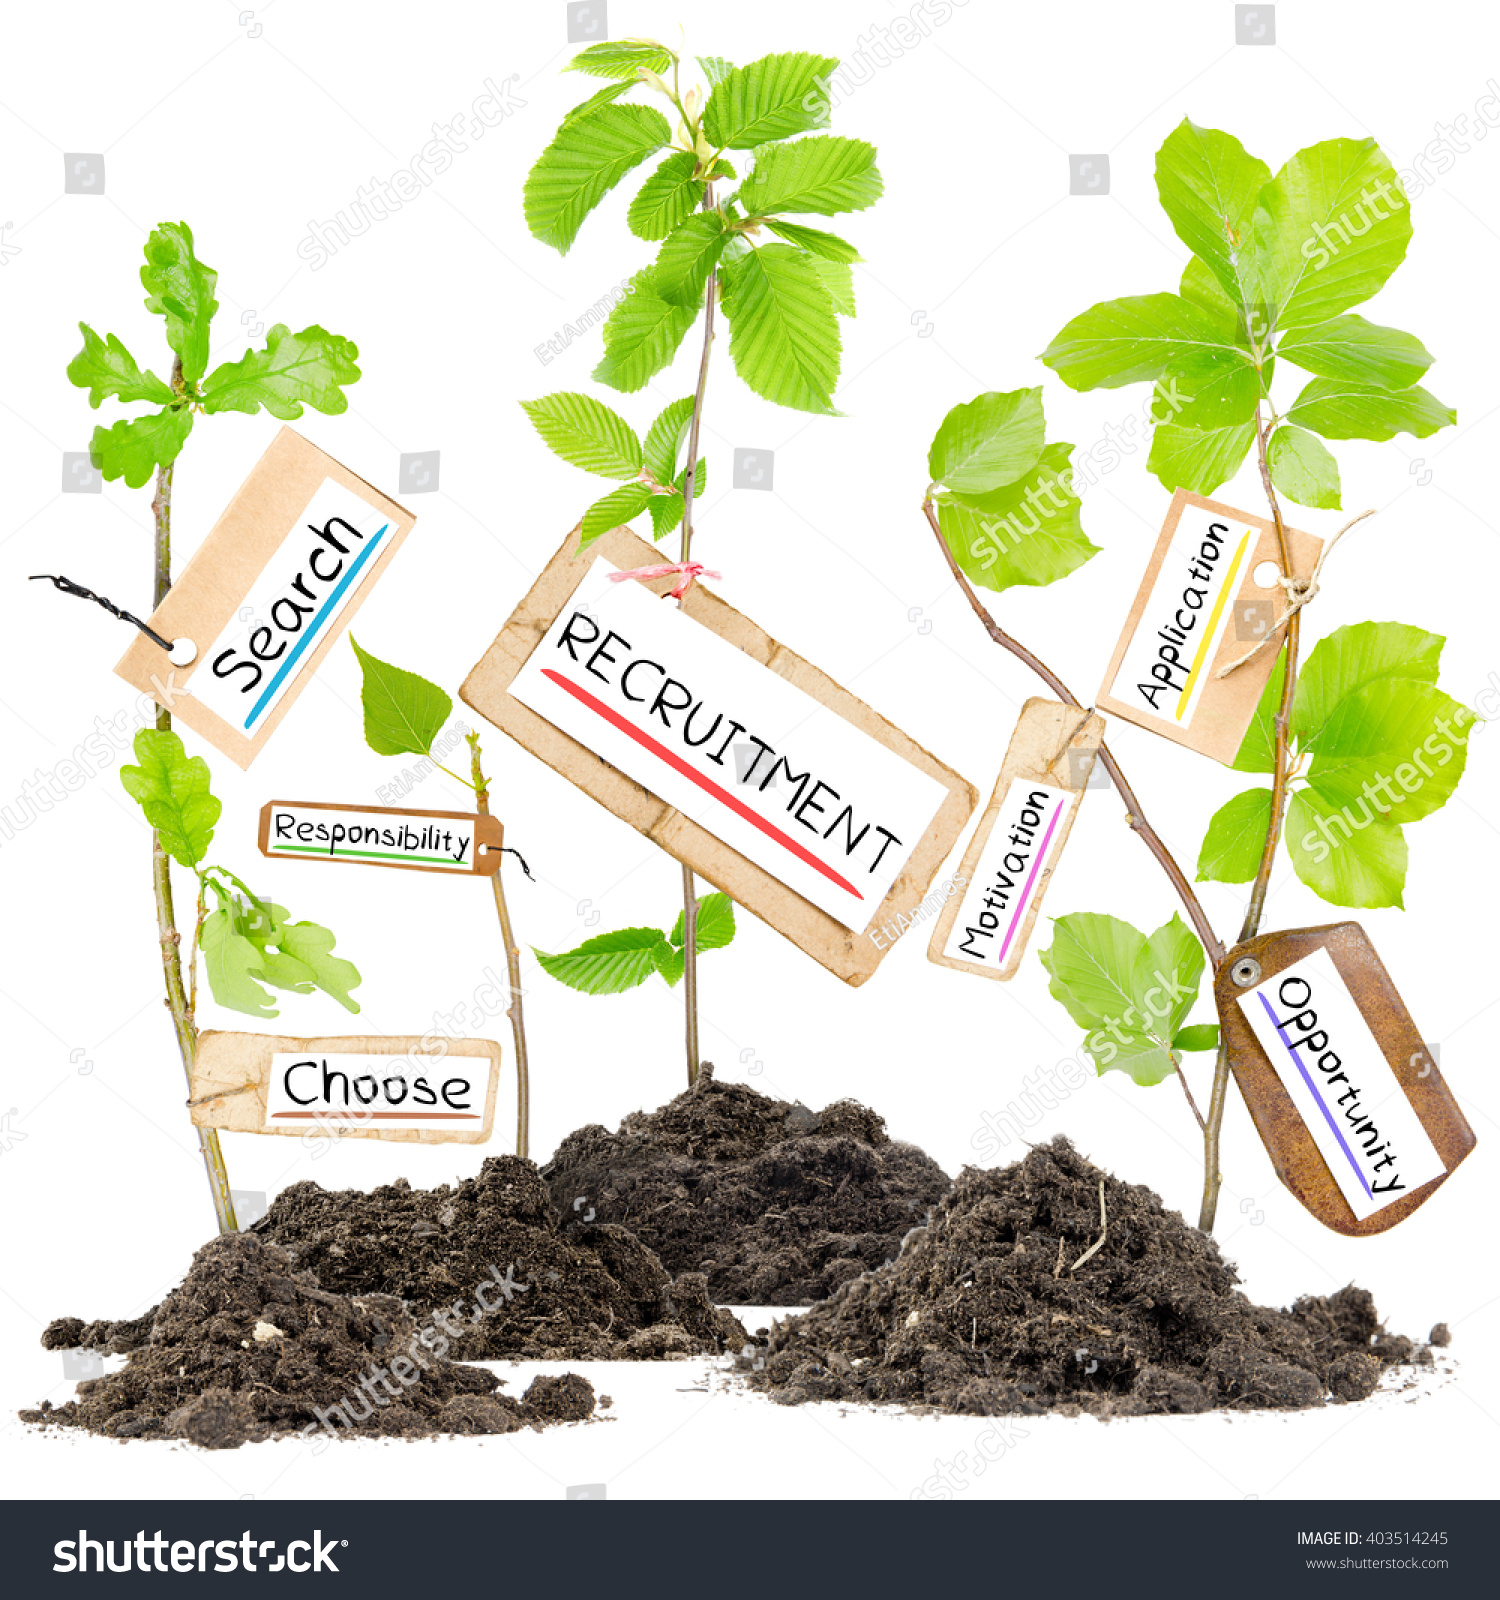 Photo plants growing soil heaps recruitment stock photo for Words for soil